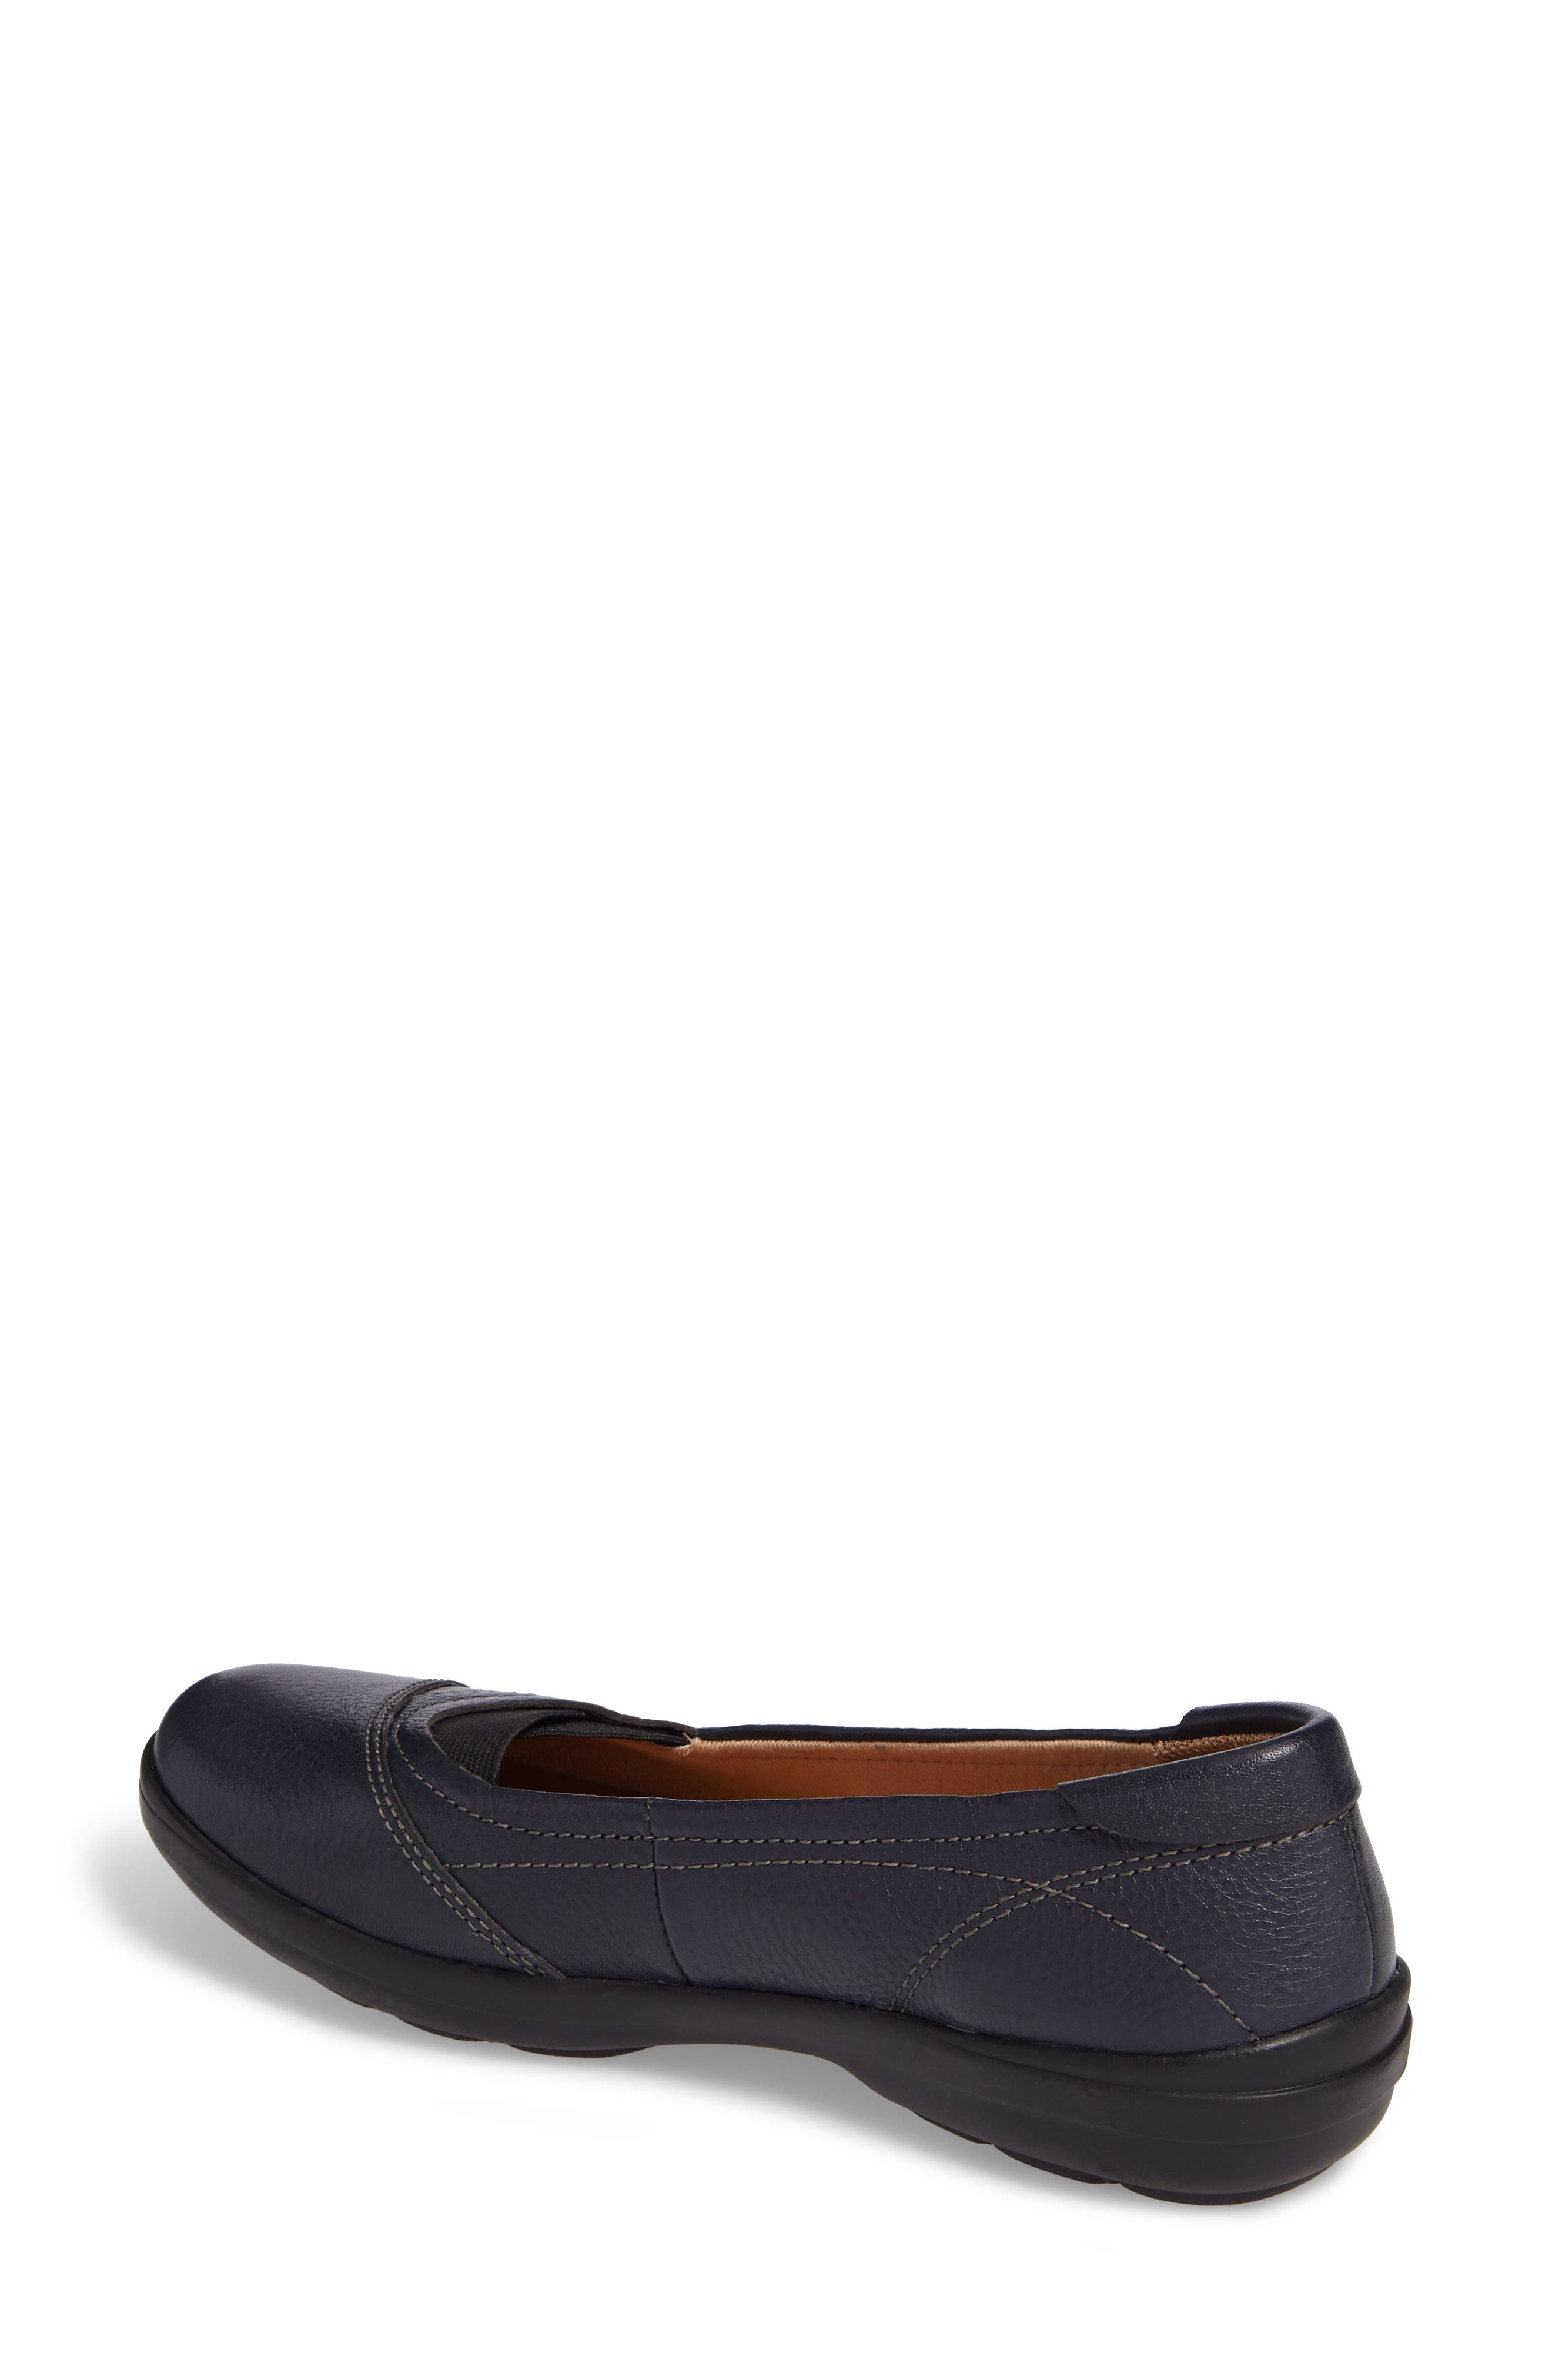 Renee Flat,                             Alternate thumbnail 2, color,                             Navy Leather